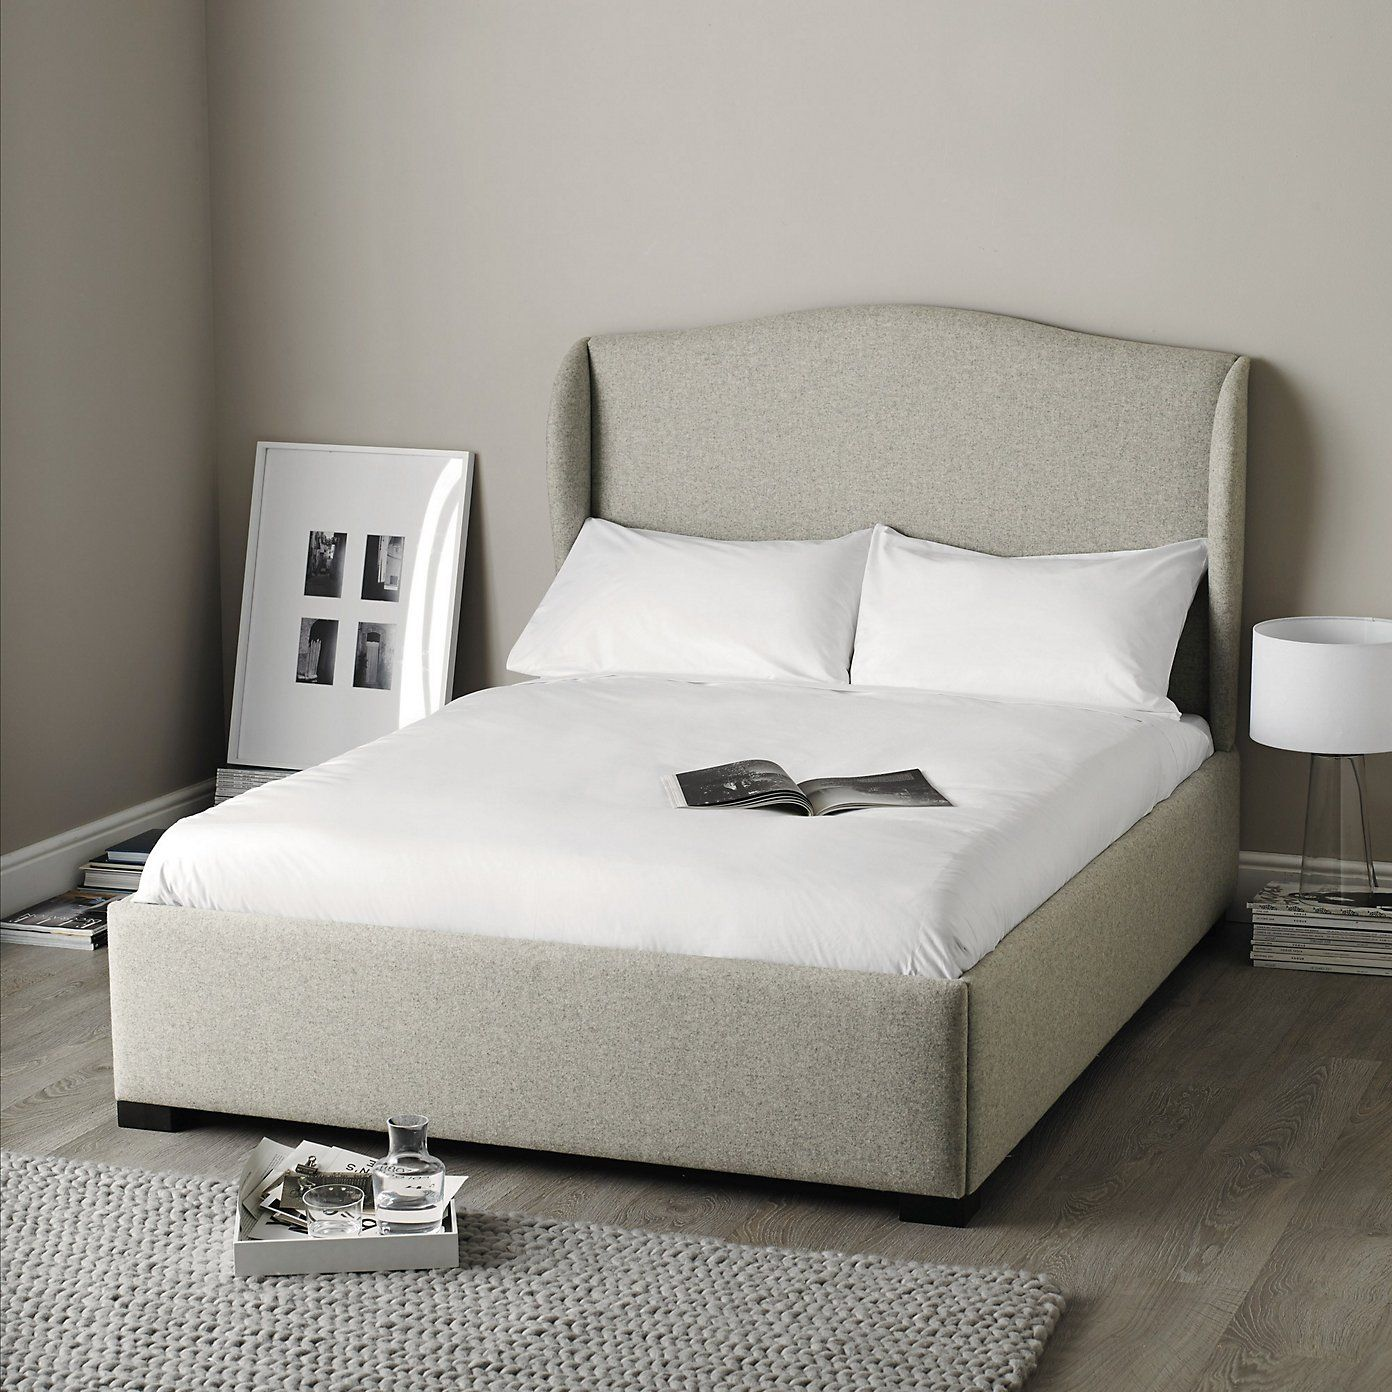 suffolk bed light grey the white company ideeen voor het huis